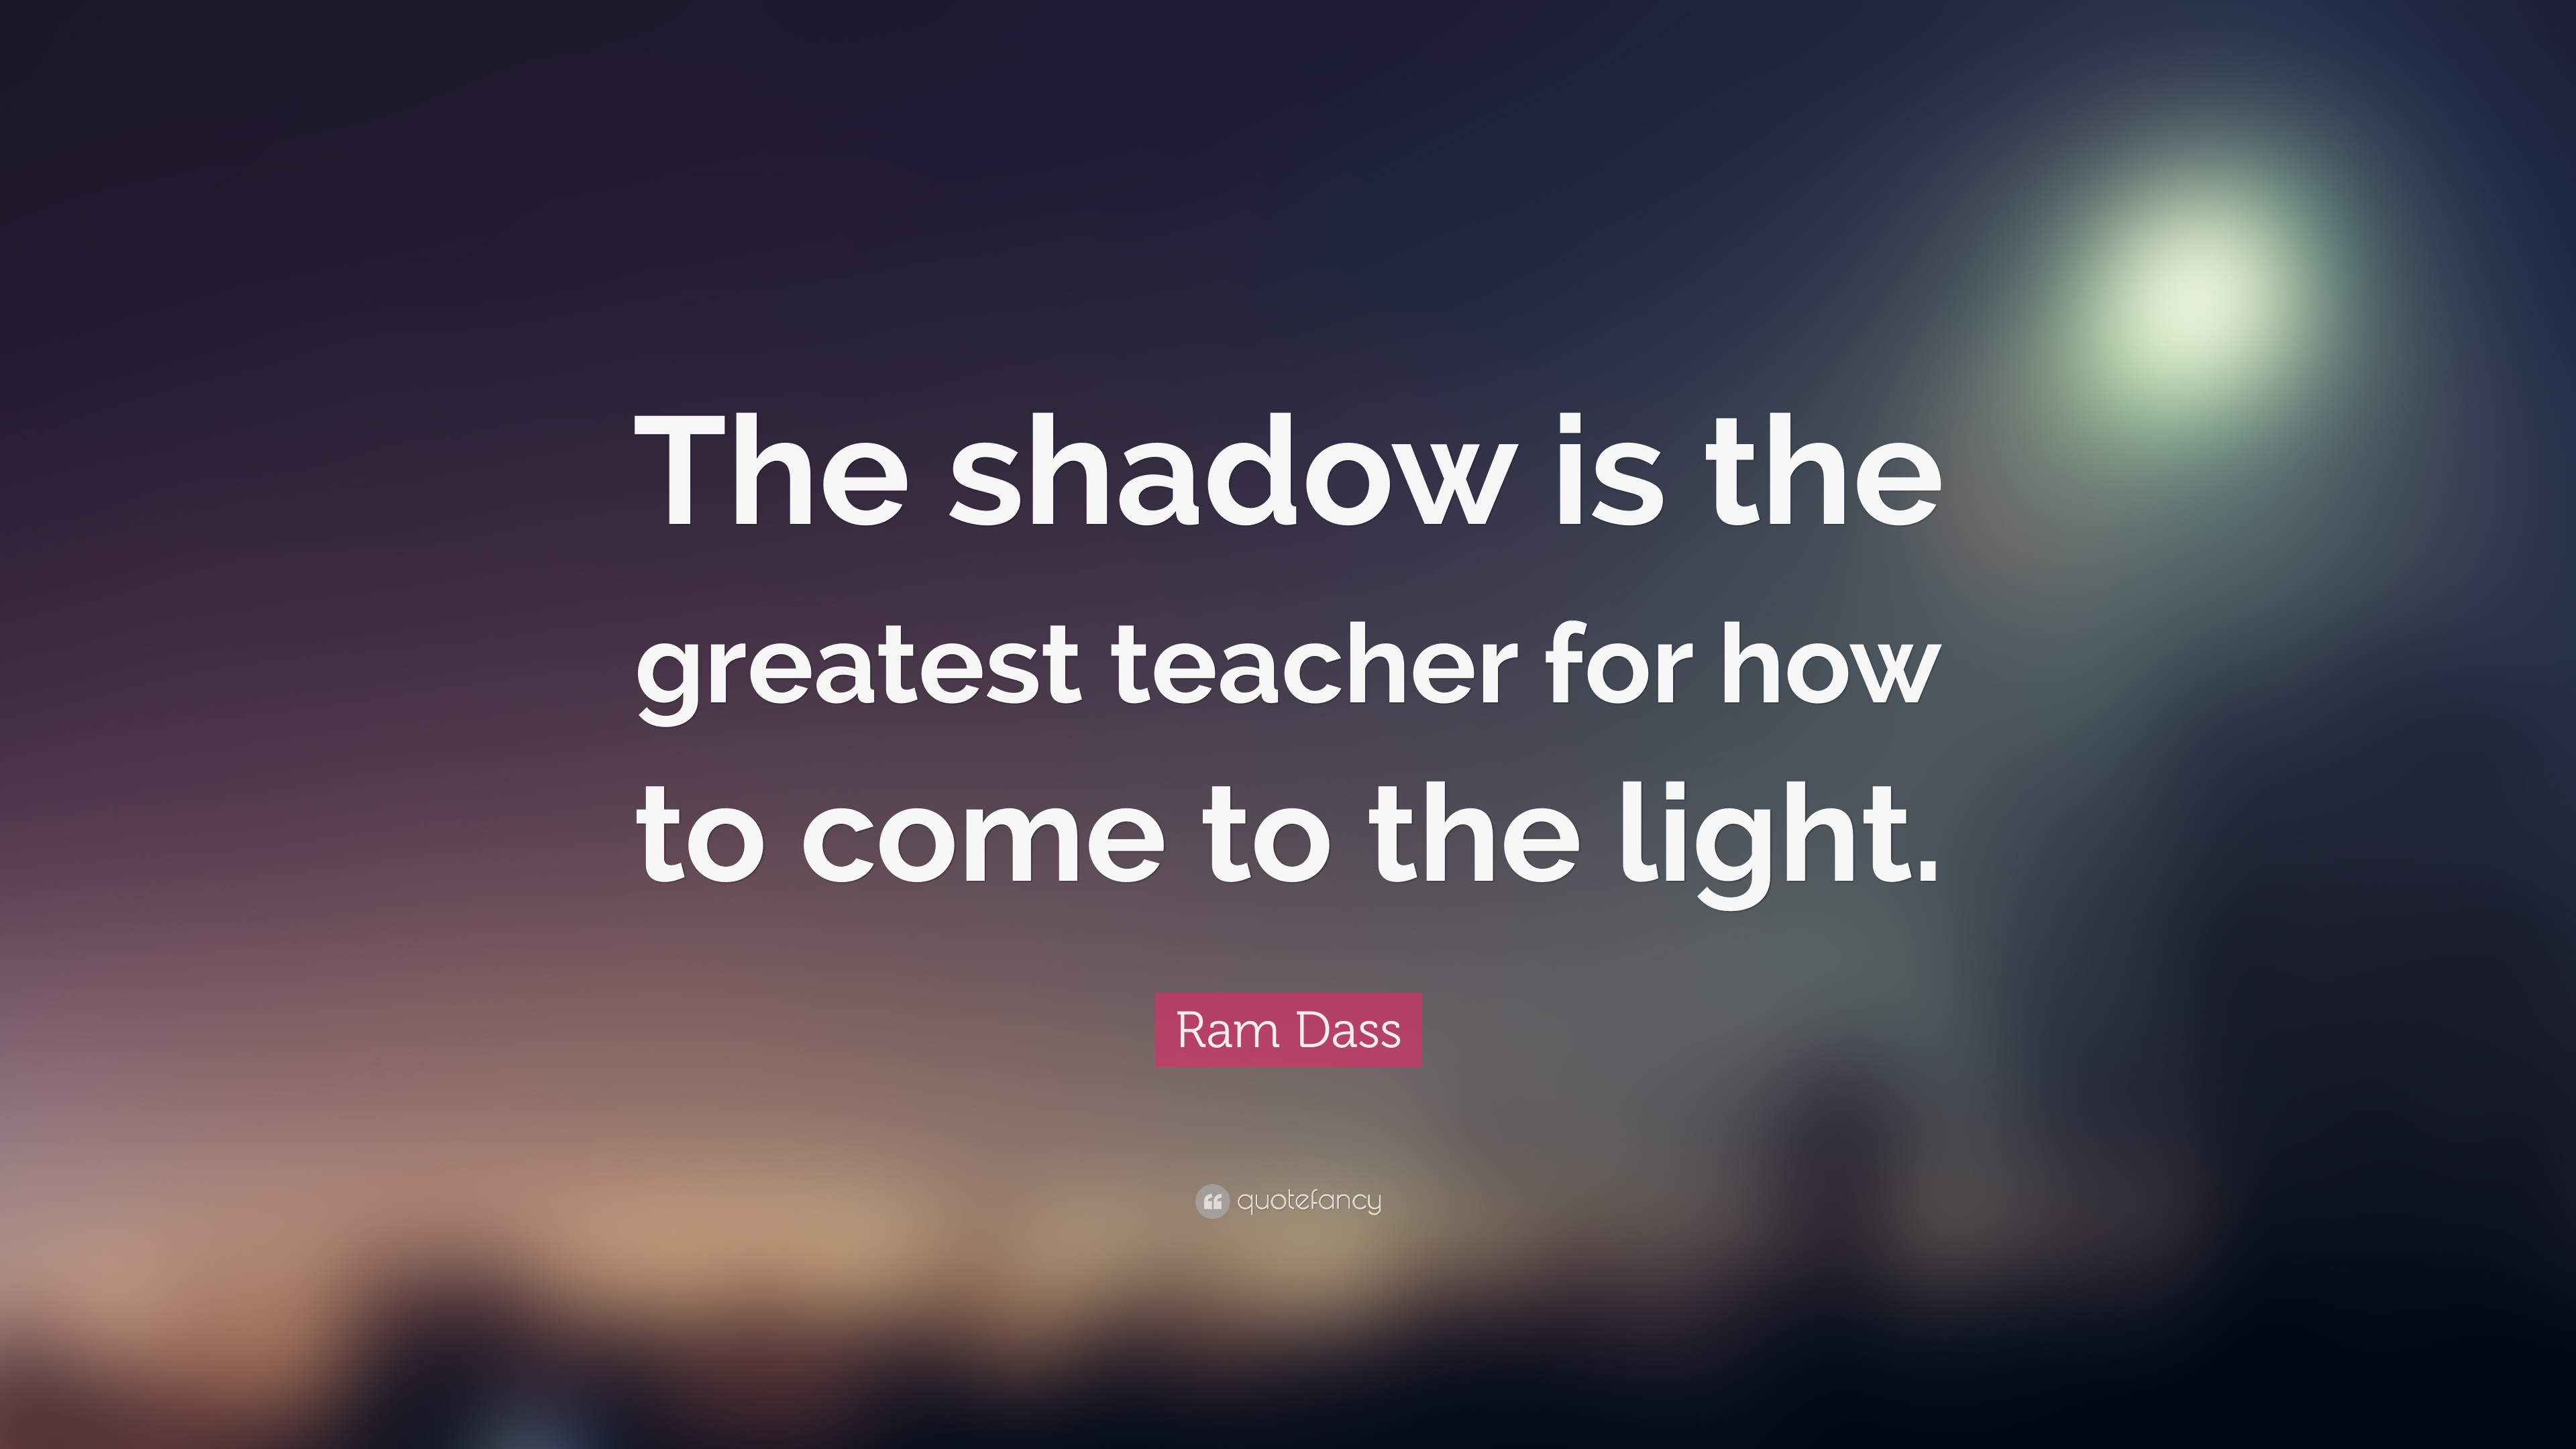 """Ram Dass Quote: """"The shadow is the greatest teacher for how to come ... for Shadow Light Quotes  555kxo"""